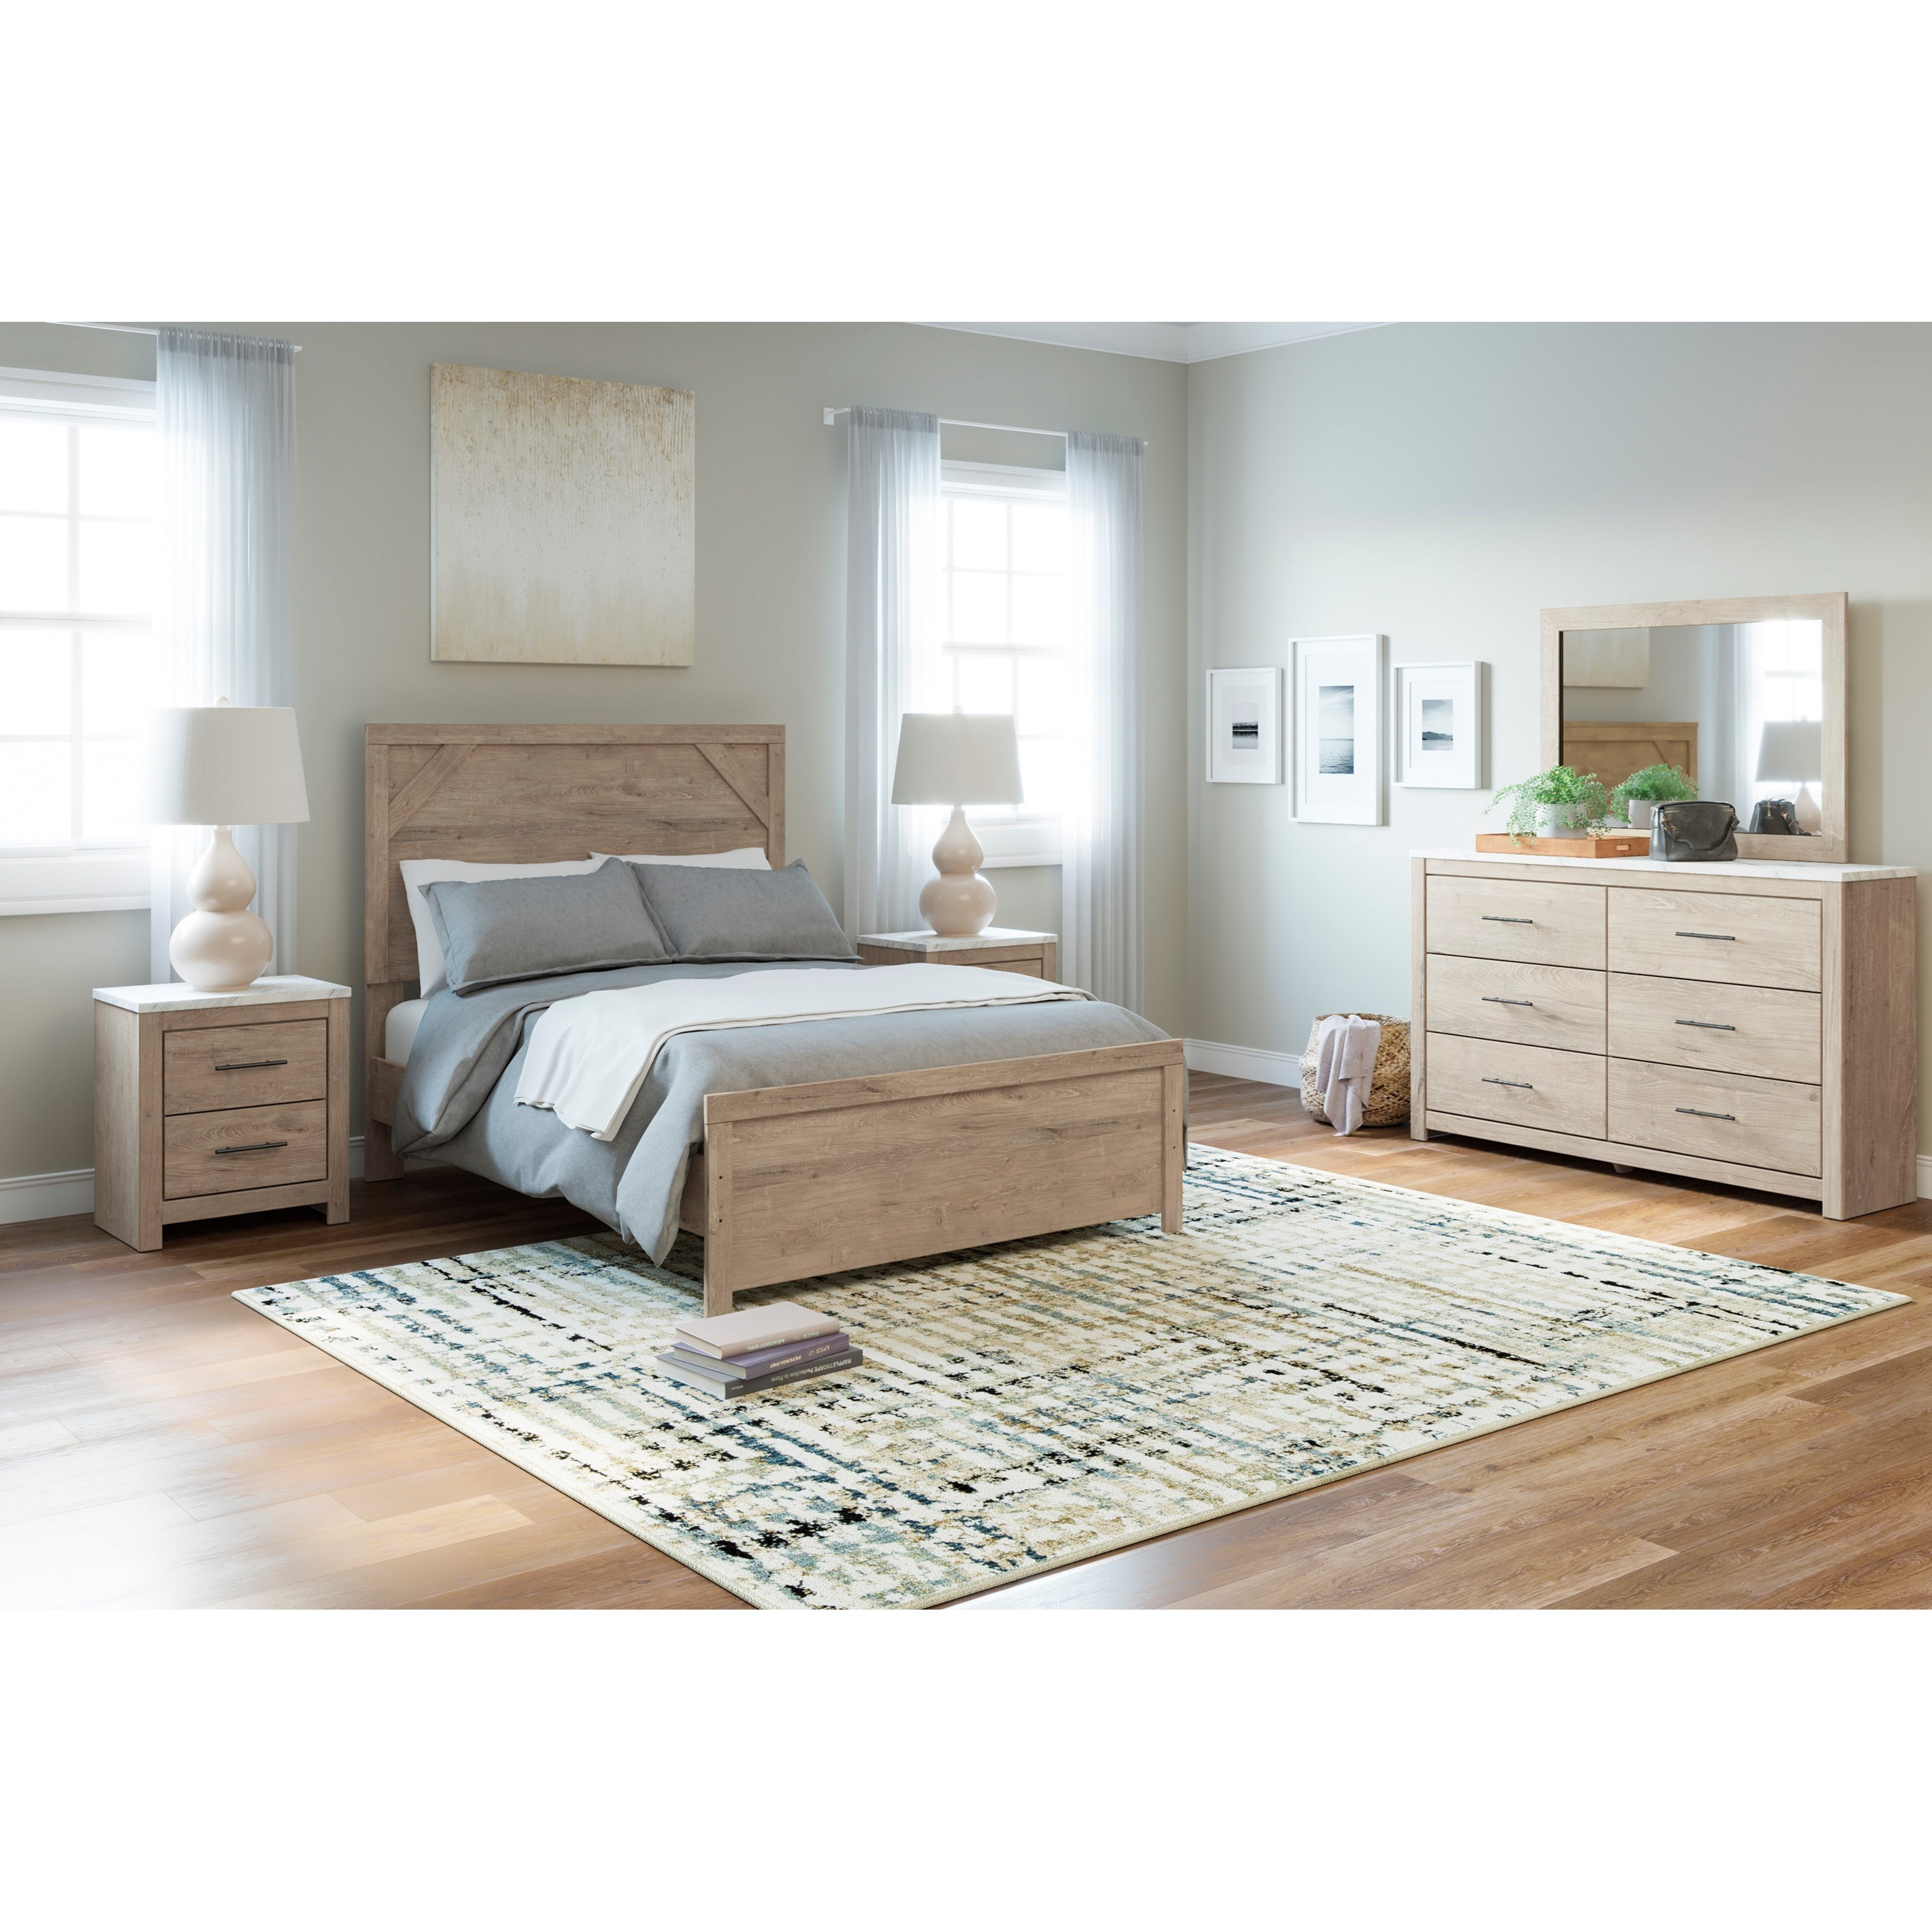 Senniberg Full Bedroom Group by Signature Design by Ashley at Household Furniture